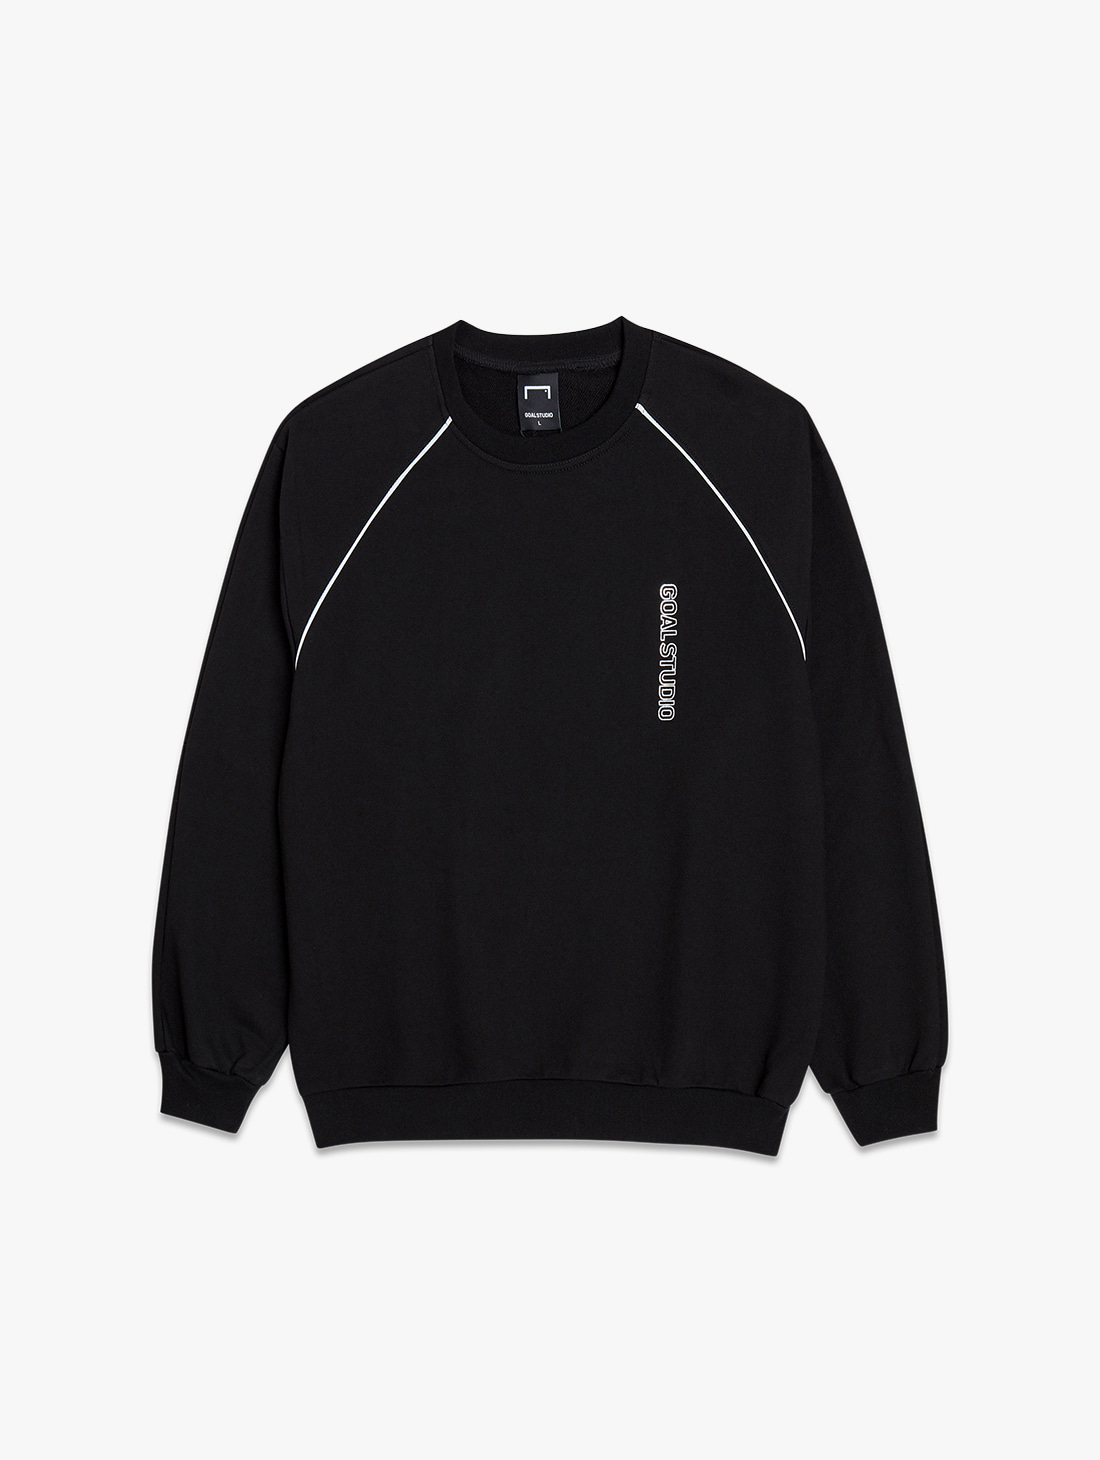 GOALSTUDIO PIPING SWEATSHIRT (3 Colors)